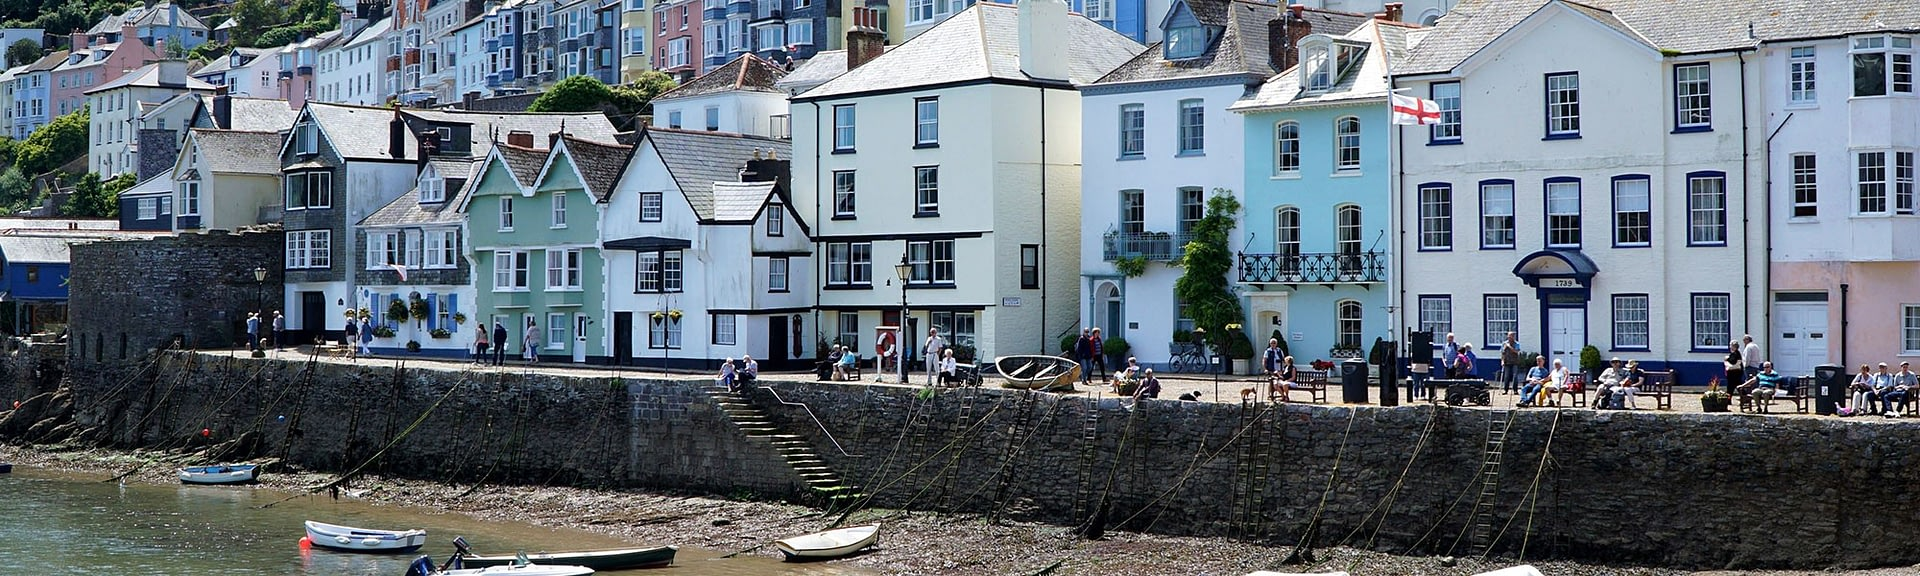 Hotels in Dartmouth